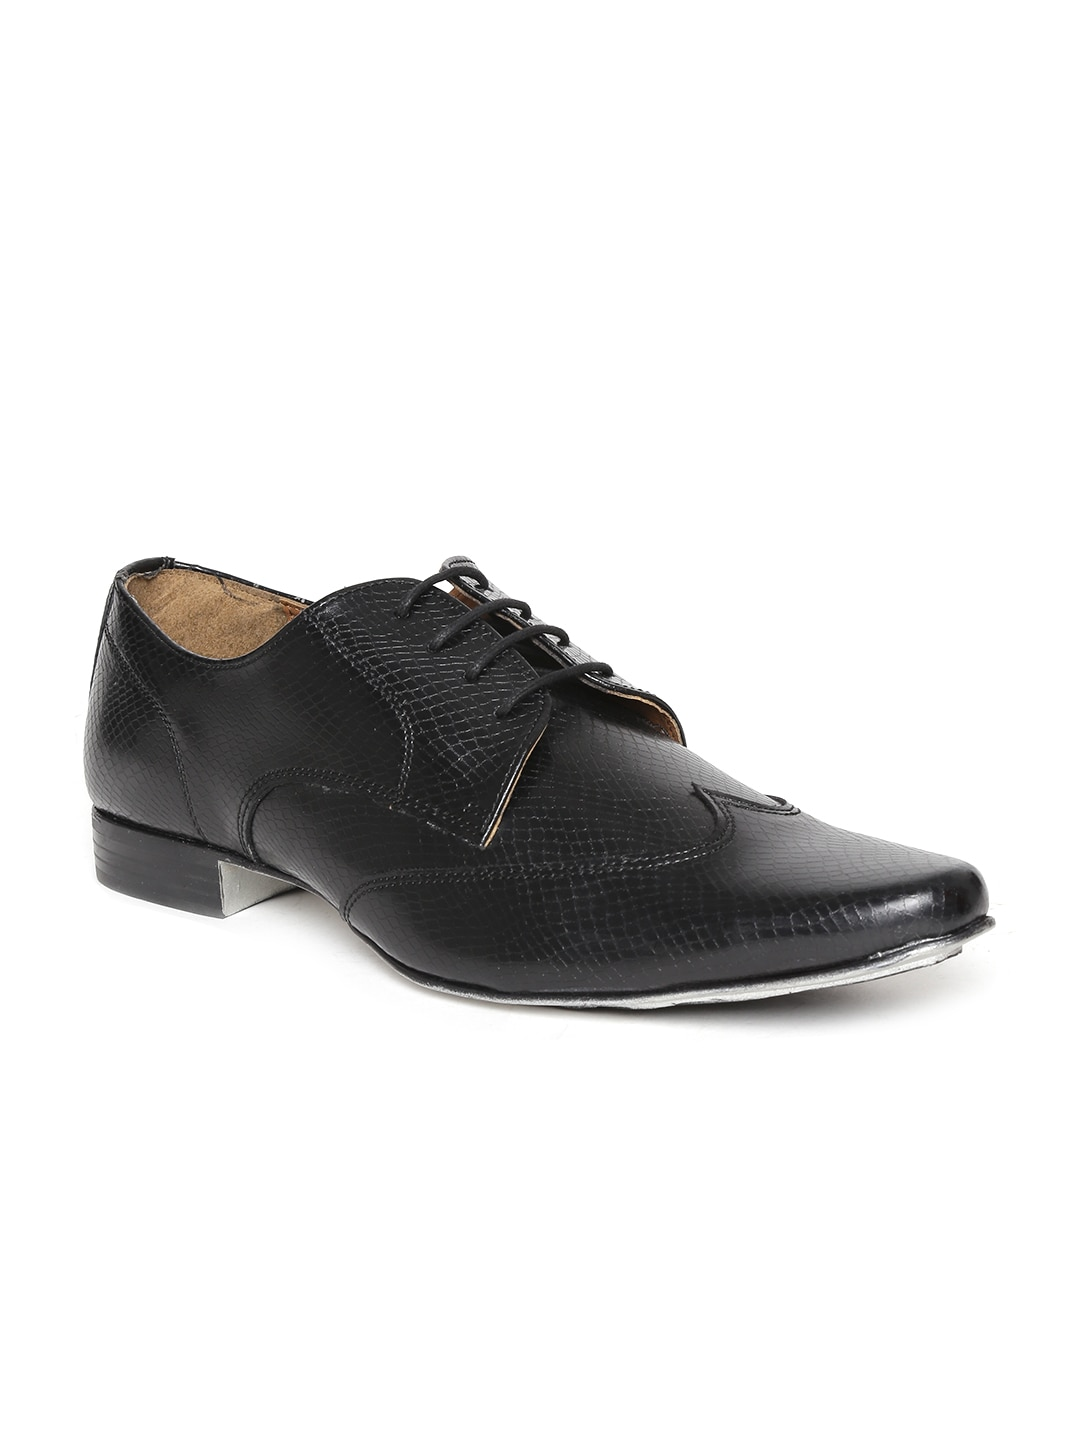 Knotty Derby by Arden Men Black Textured Formal Shoes image